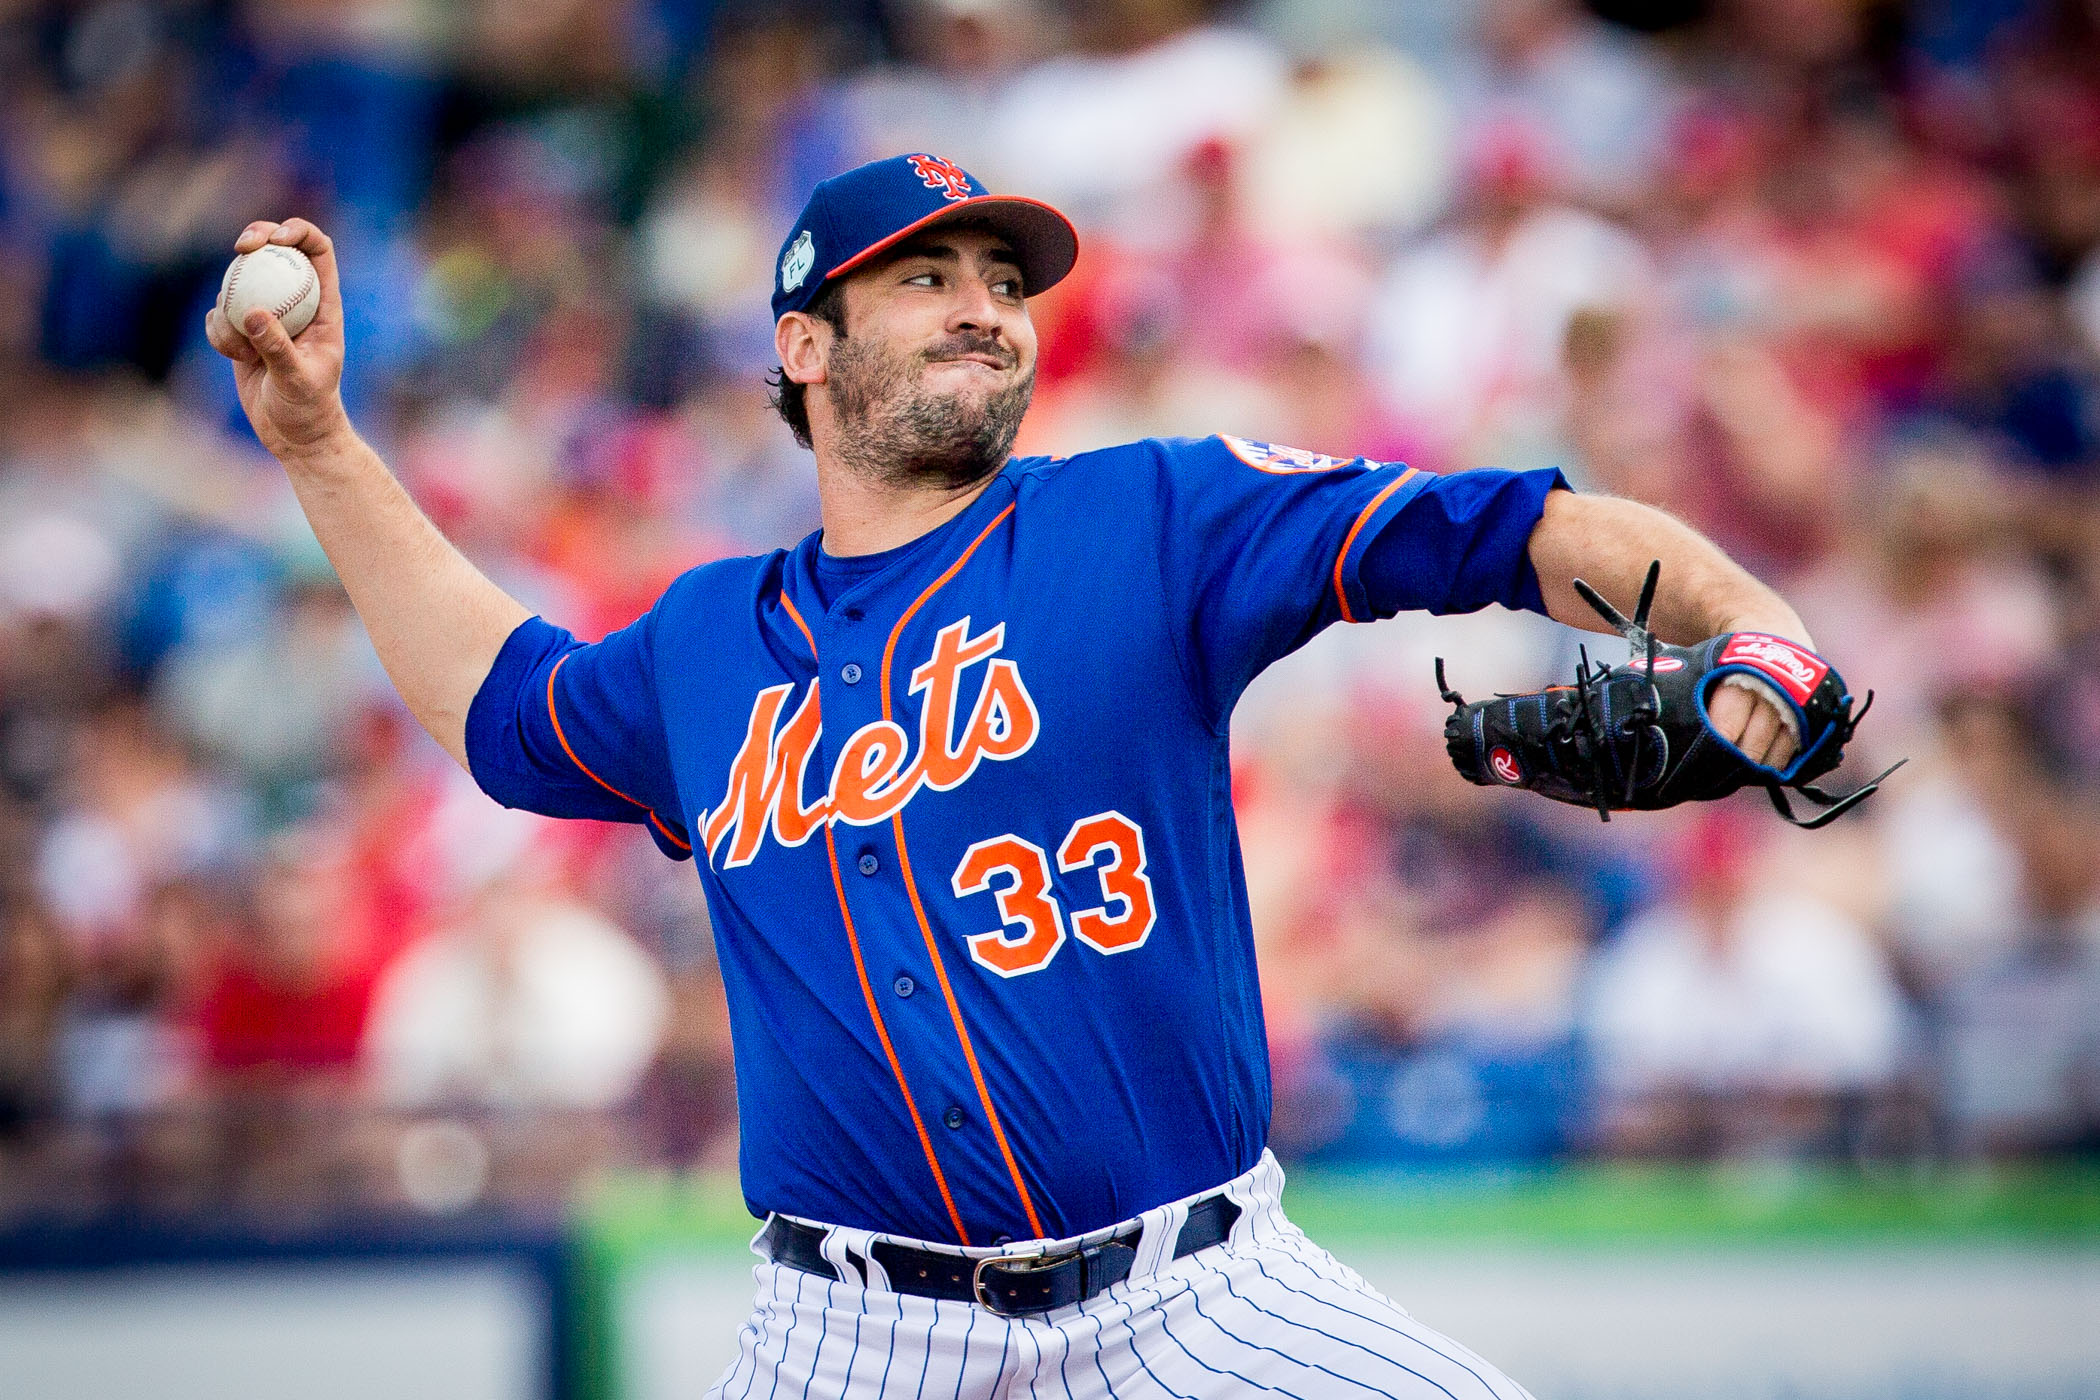 New York Mets pitcher Matt Harvey (33) throws a pitch in the top of the first inning against the St. Louis Cardinals during a spring training matchup inside First Data Field in Port St. Lucie, Fla., on Sunday, March 5, 2017. (Michael Ares for The New York Times)